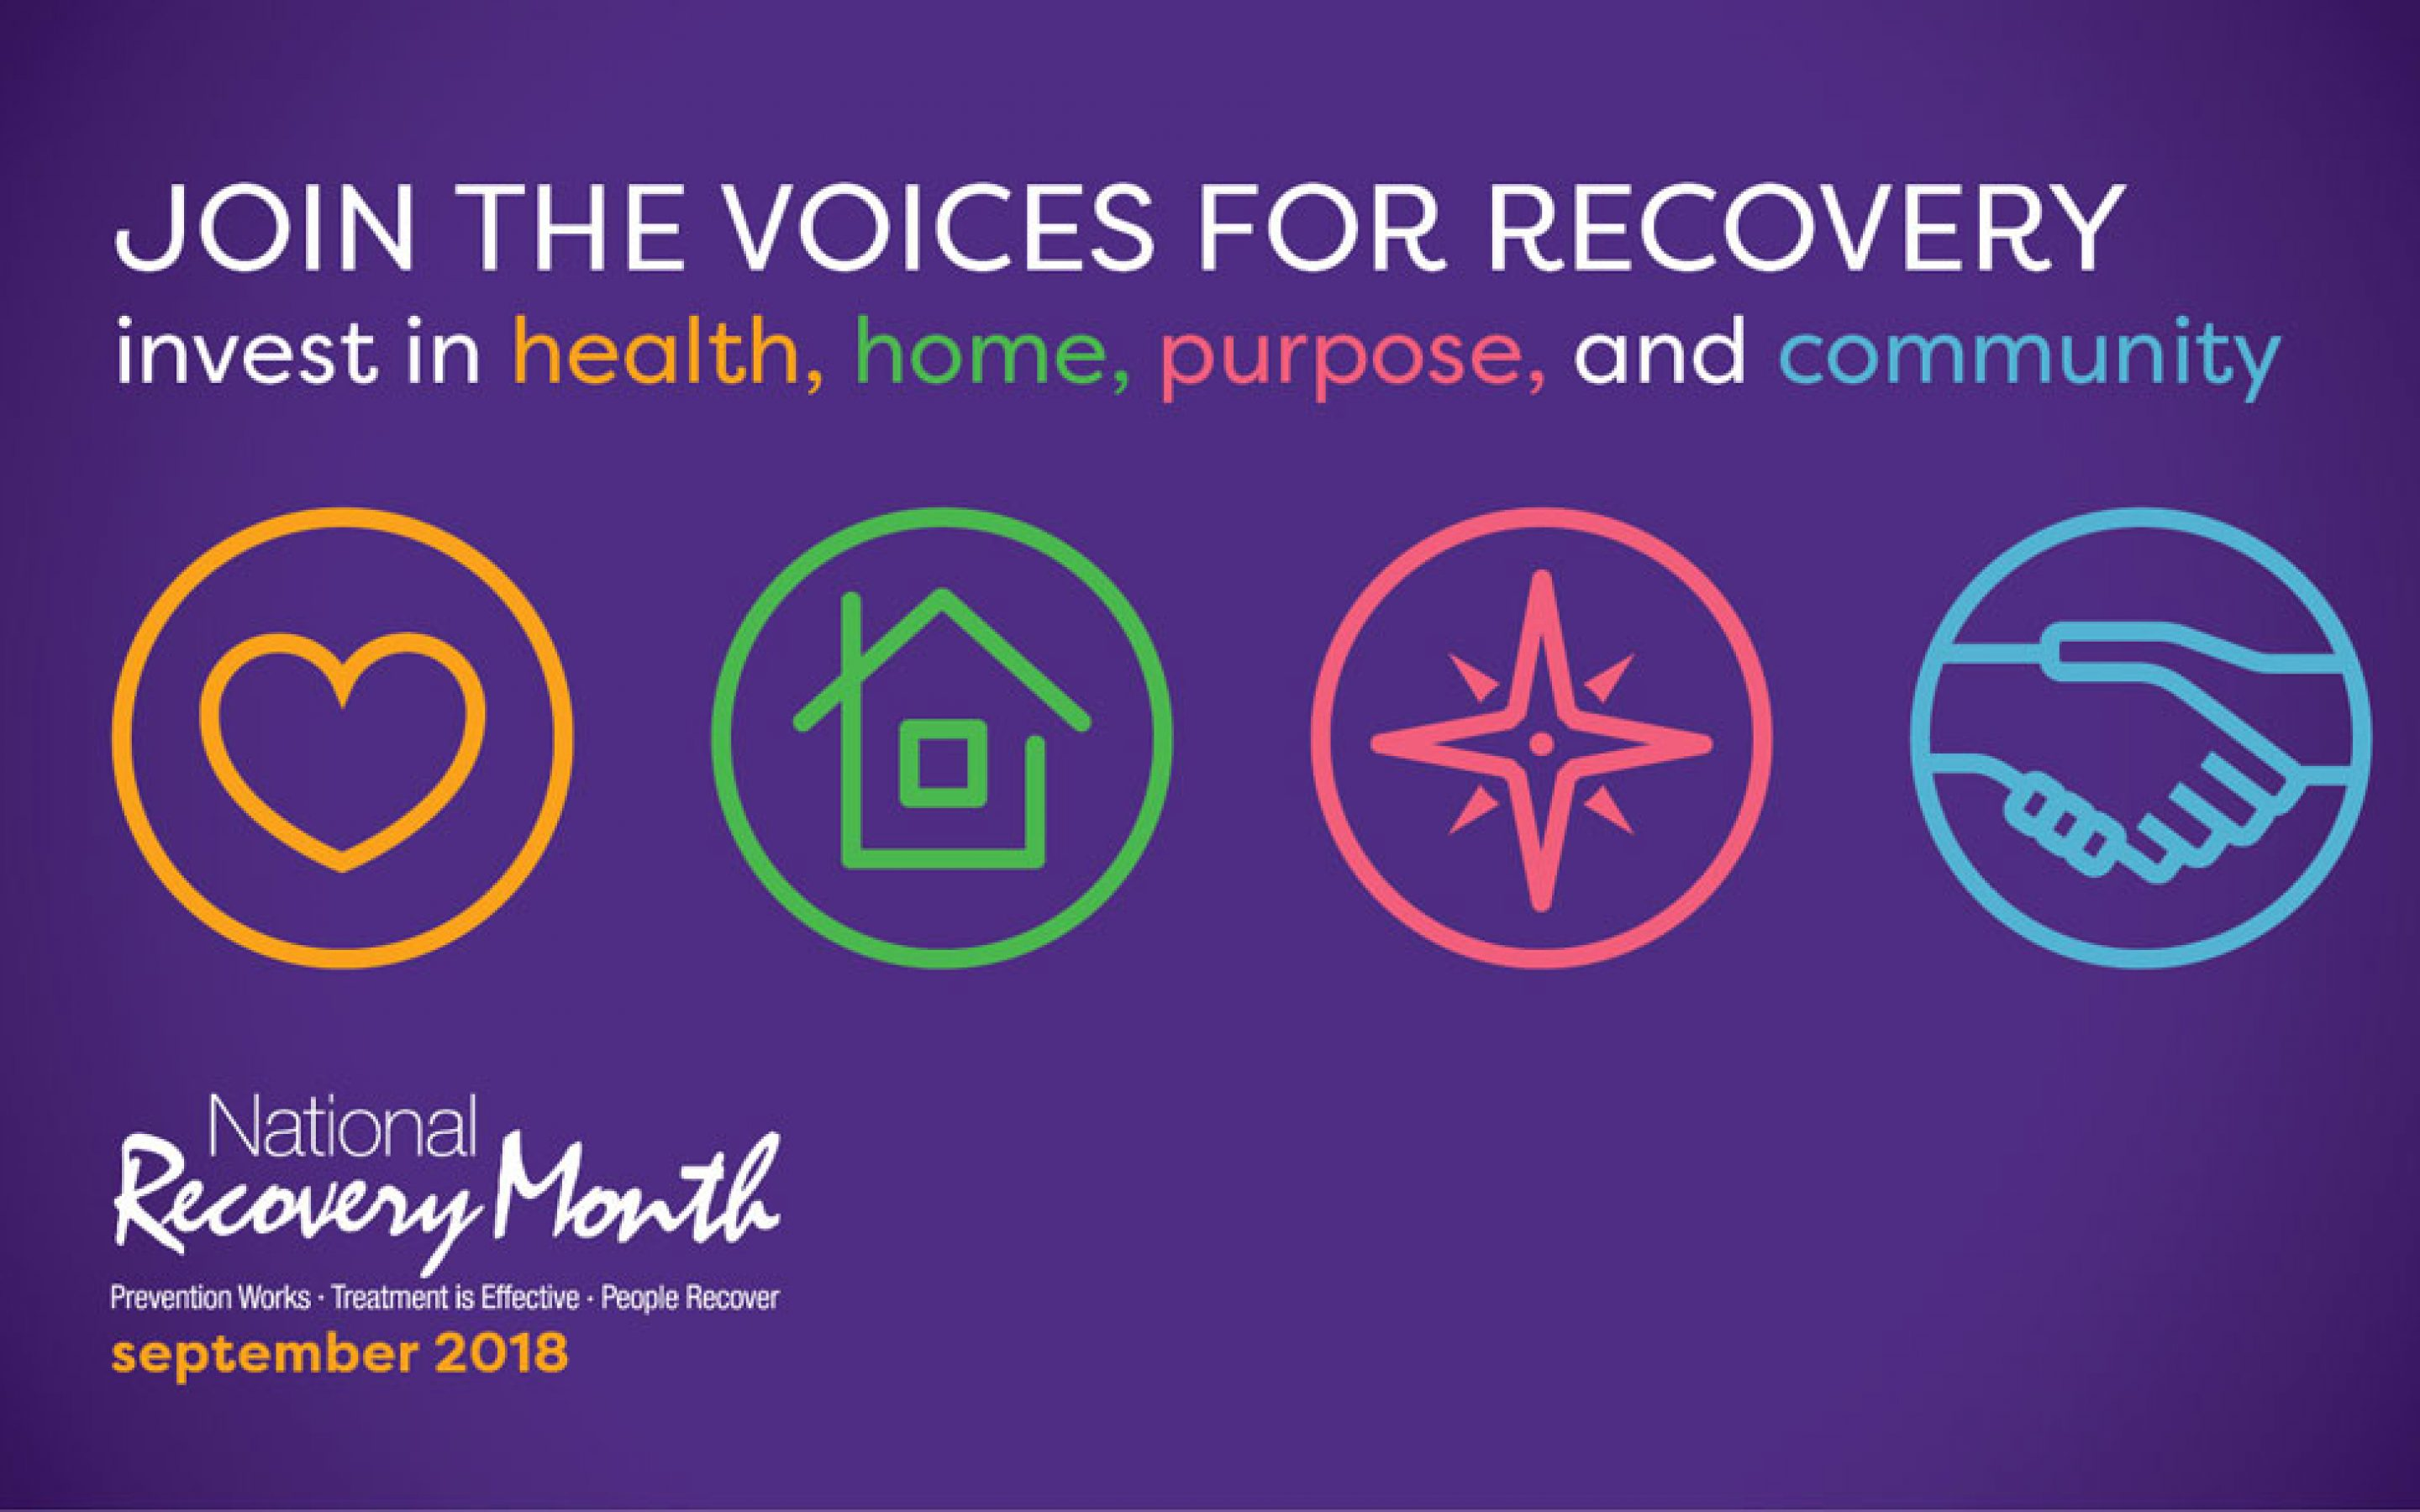 Image of logo for the 29th National Recovery Month. Join Barrington Behavioral Health and Wellness and SAMHSA (Substance Abuse Mental Health Services Administration) in Celebrating the 29th Annual National Recovery Month. For more information contact us at help@barringtonbhw.com or call: 888-261-2178